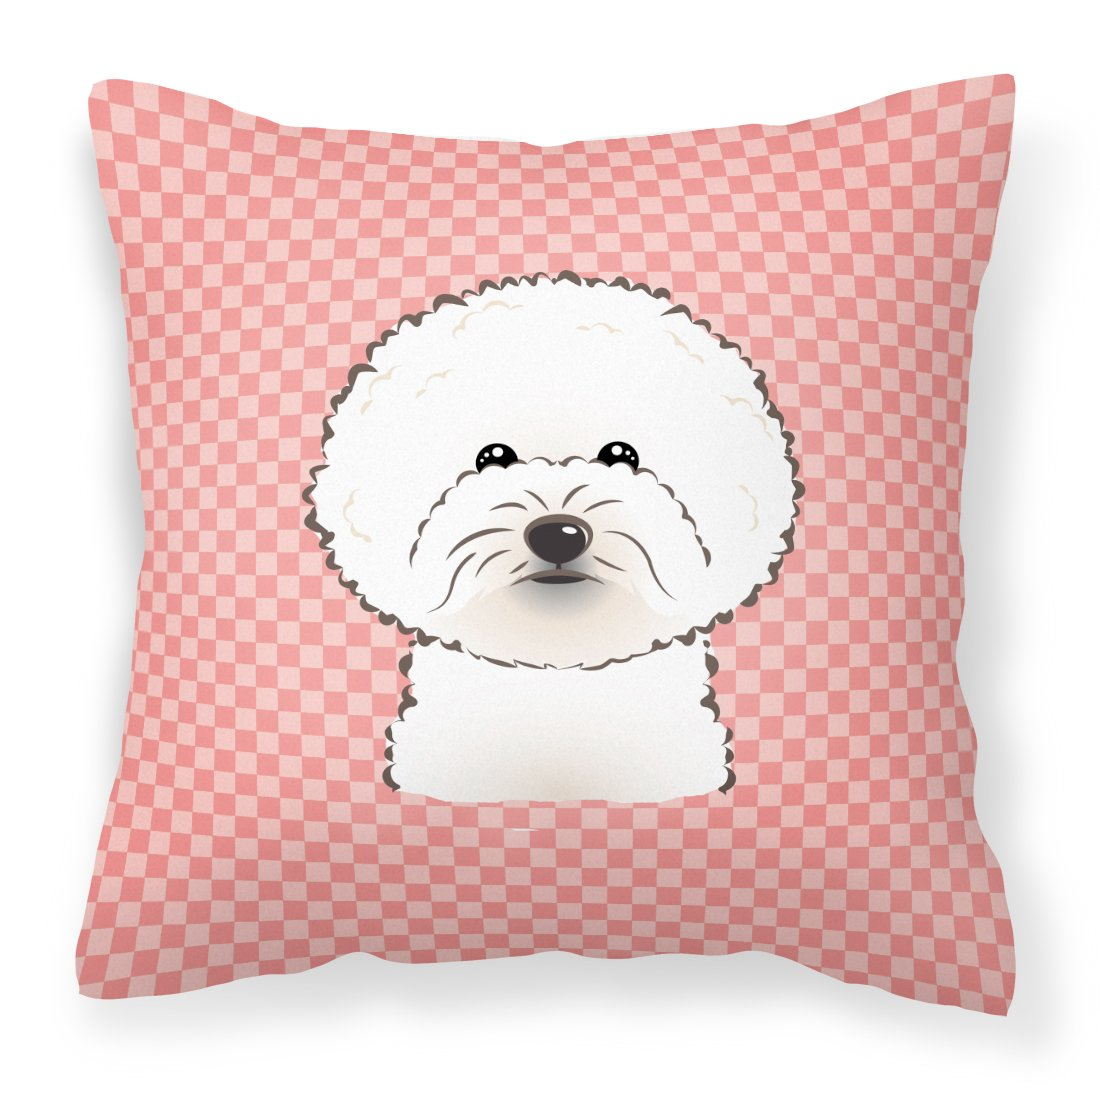 Checkerboard Pink Bichon Frise Canvas Fabric Decorative Pillow by Caroline's Treasures